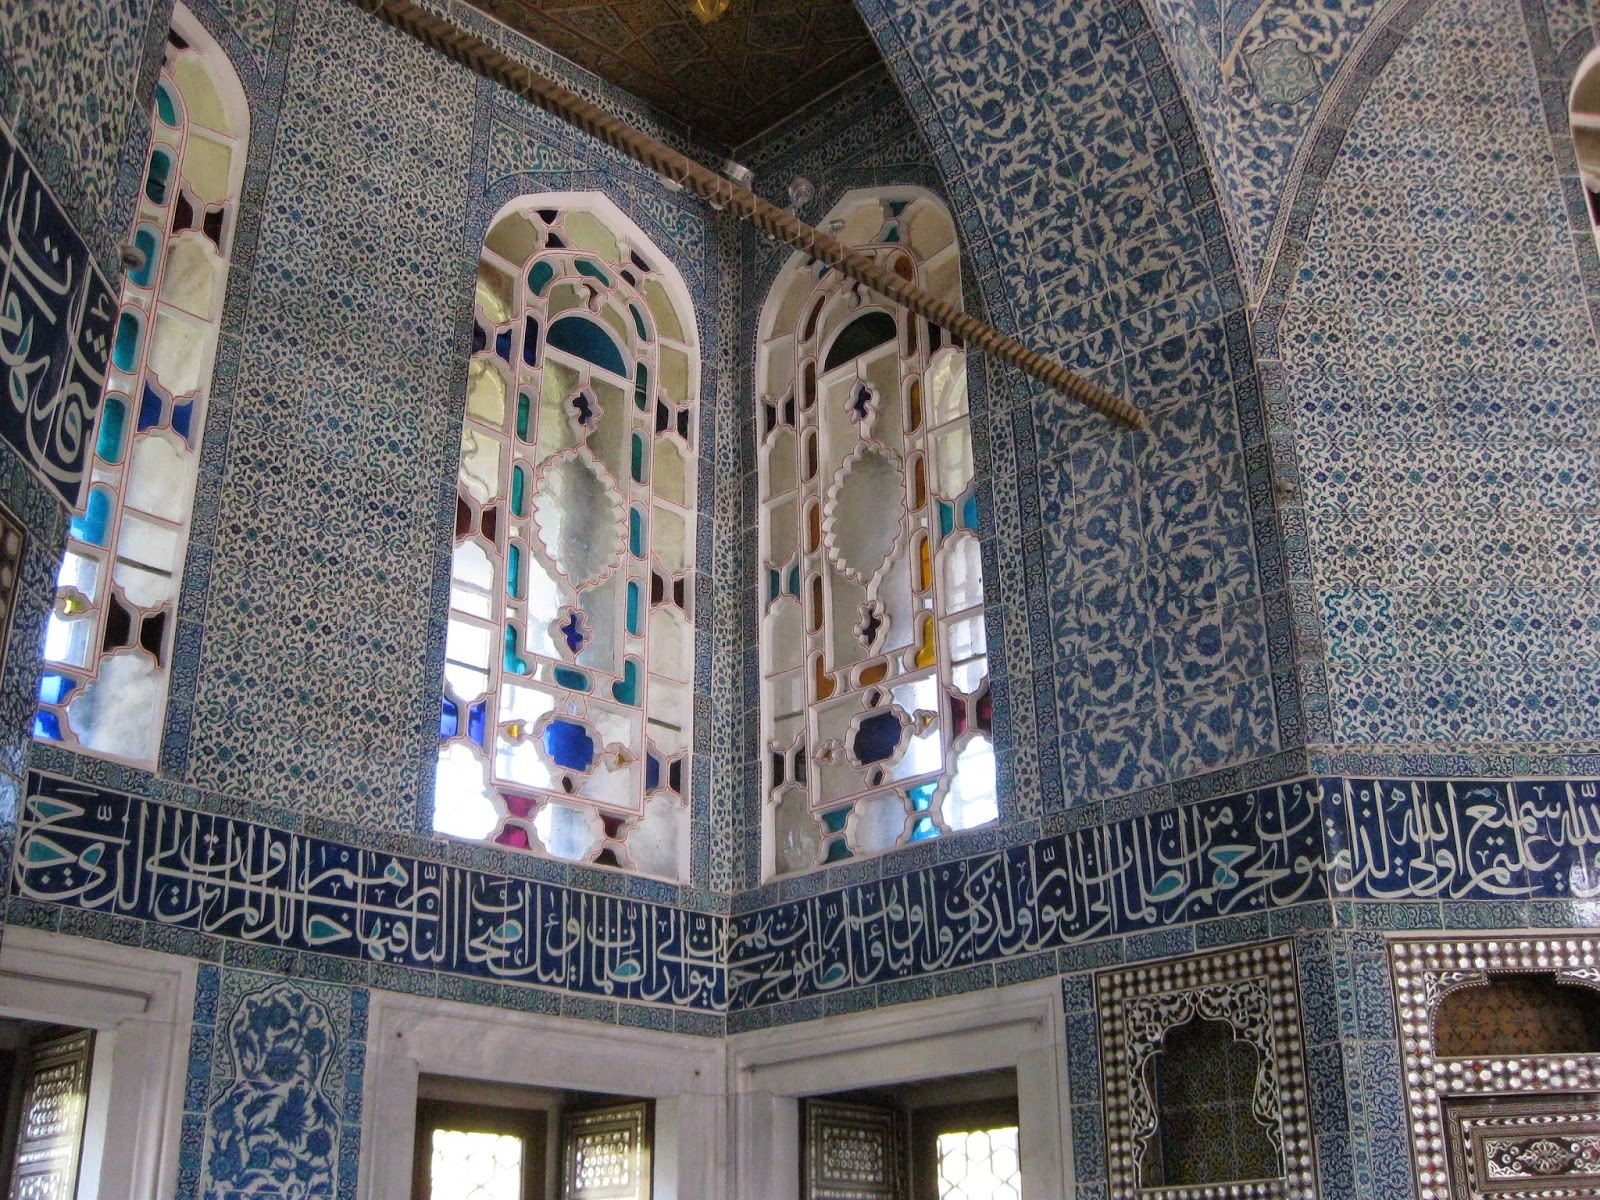 Istanbul - One of the many chambers in Topkapi Palace